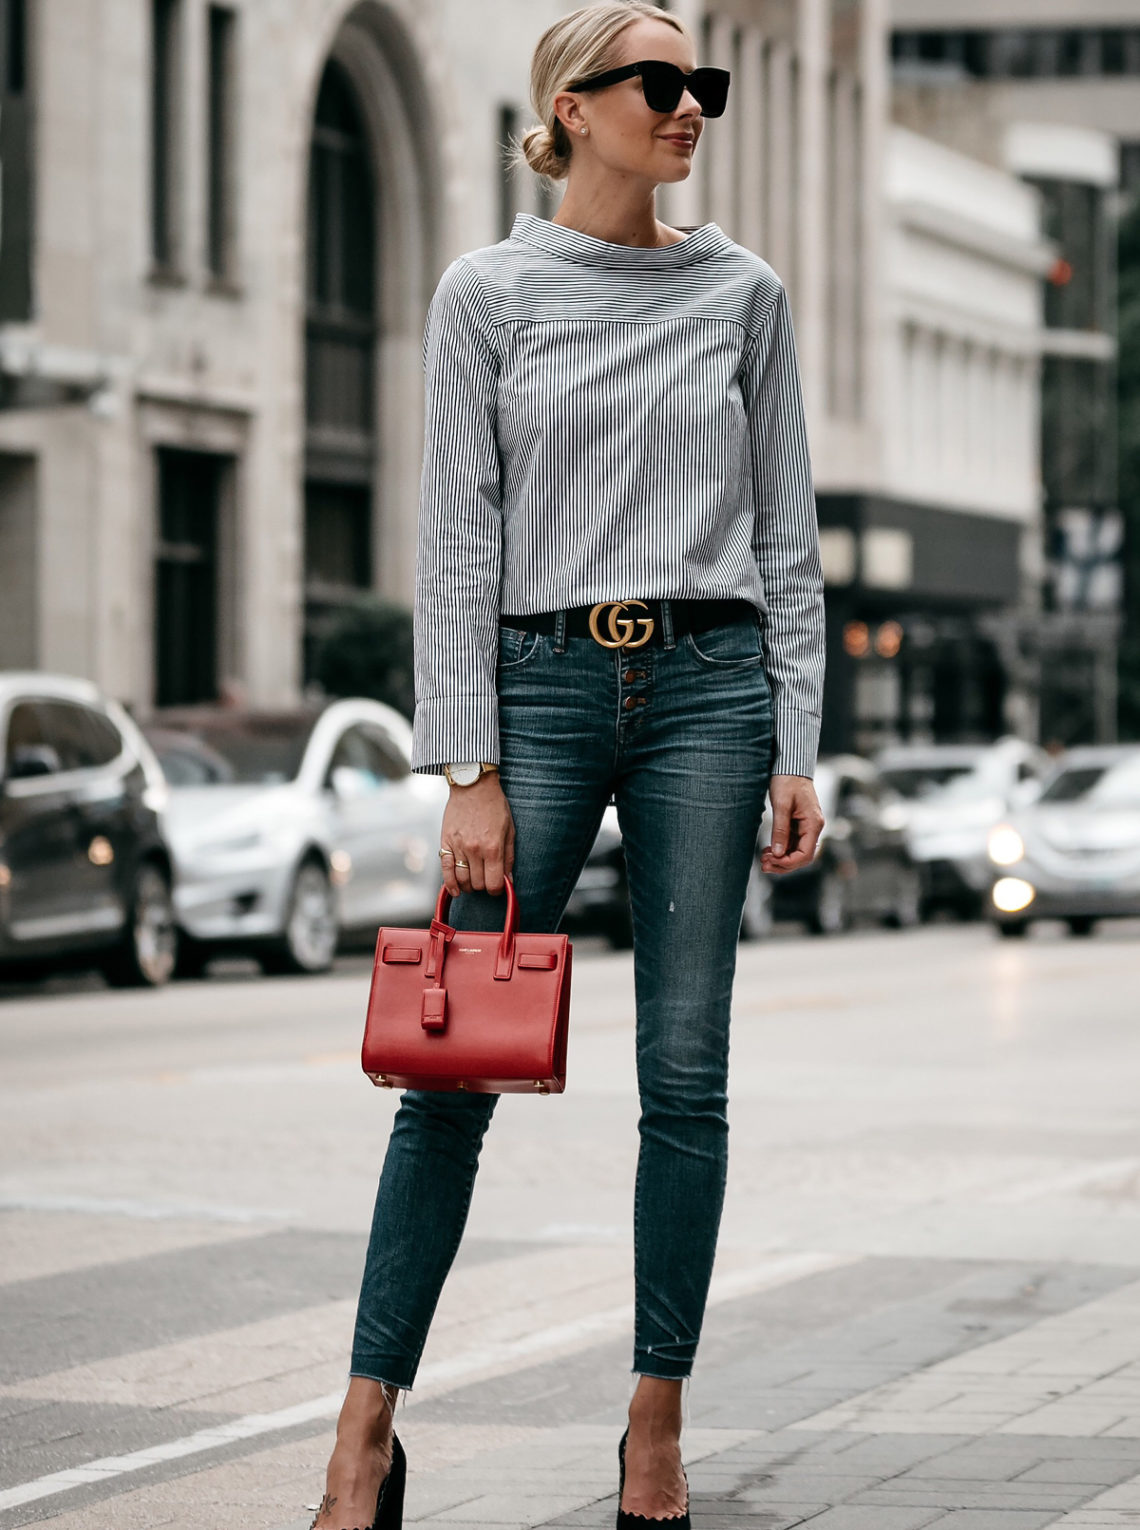 Blonde Woman Wearing Jcrew Grey Striped Shirt Denim Skinny Jeans Gucci Belt Saint Laurent Sac De Jour Mini Red Chloe Scalloped Pumps Fashion Jackson Dallas Blogger Fashion Blogger Street Style